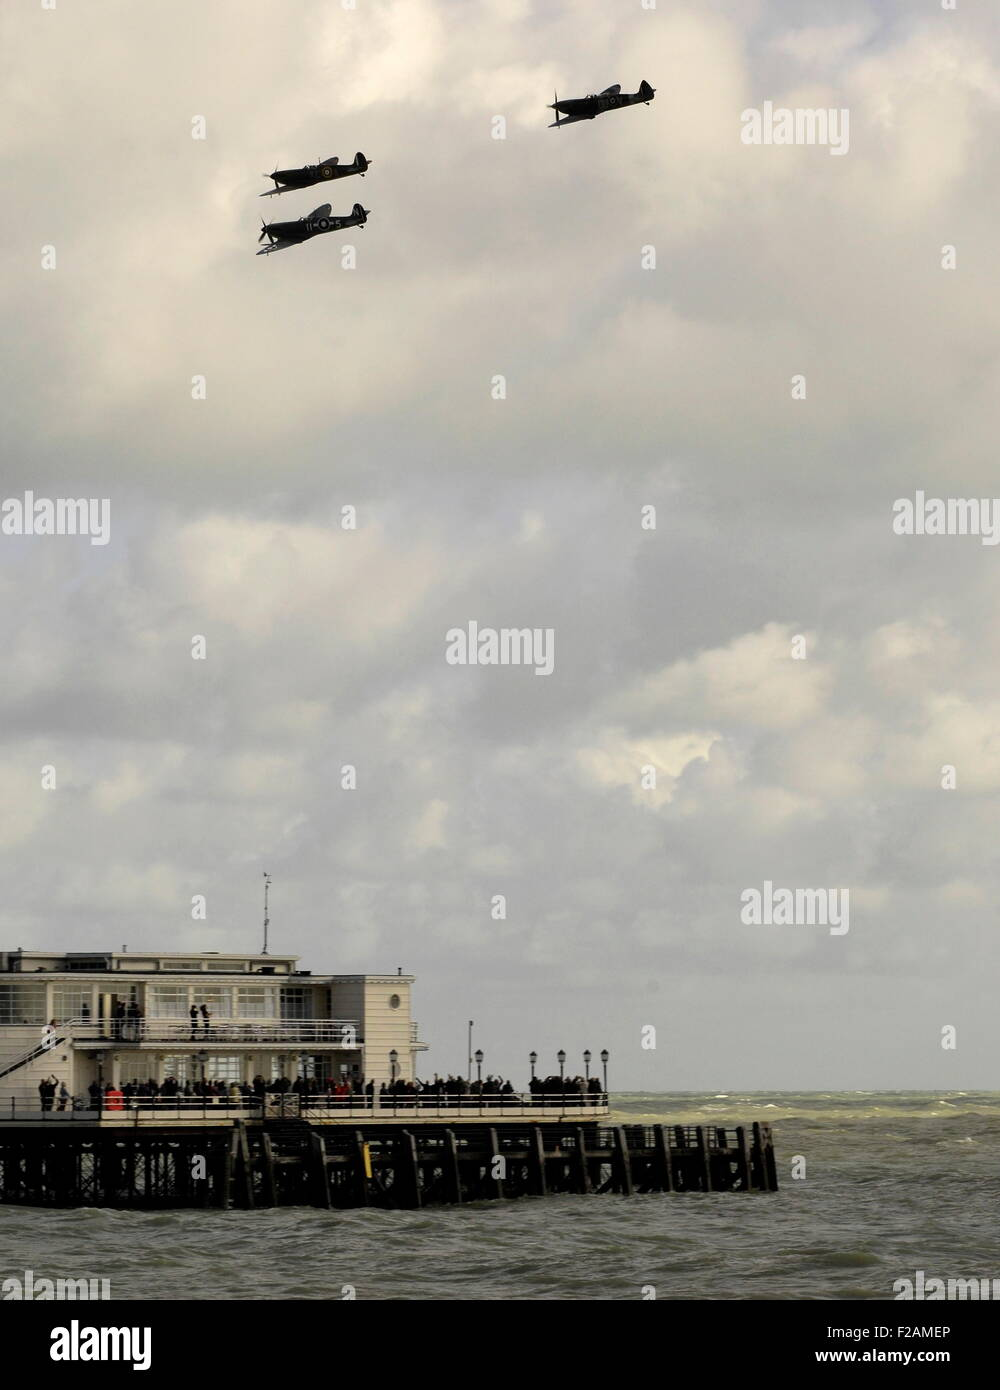 Worthing, UK. 15th September, 2015. Battle of Britain 75th anniversary flypast - three spitfires skim low over the - Stock Image